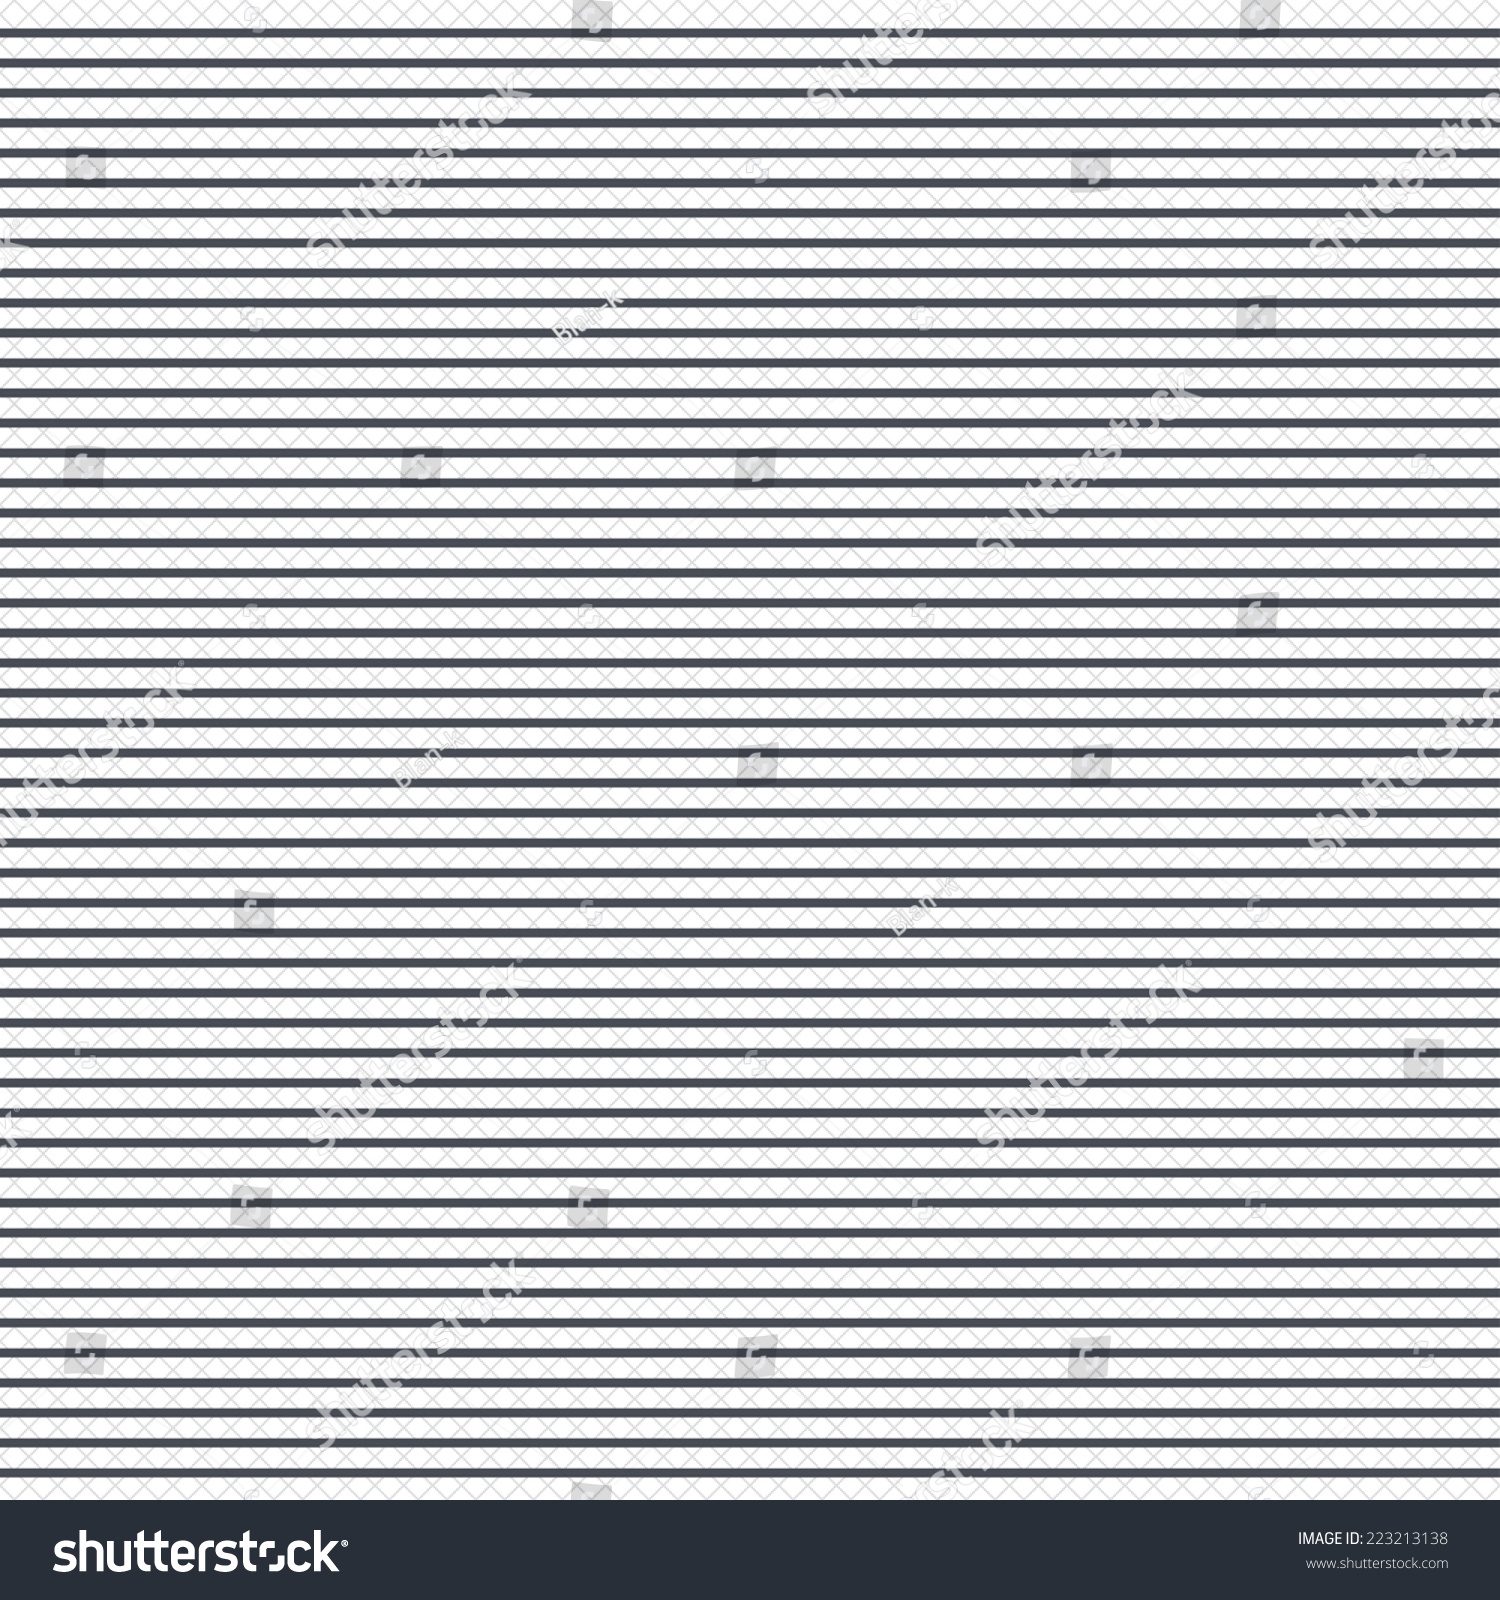 Line Texture Vector : Horizontal lines pattern background abstract wallpaper